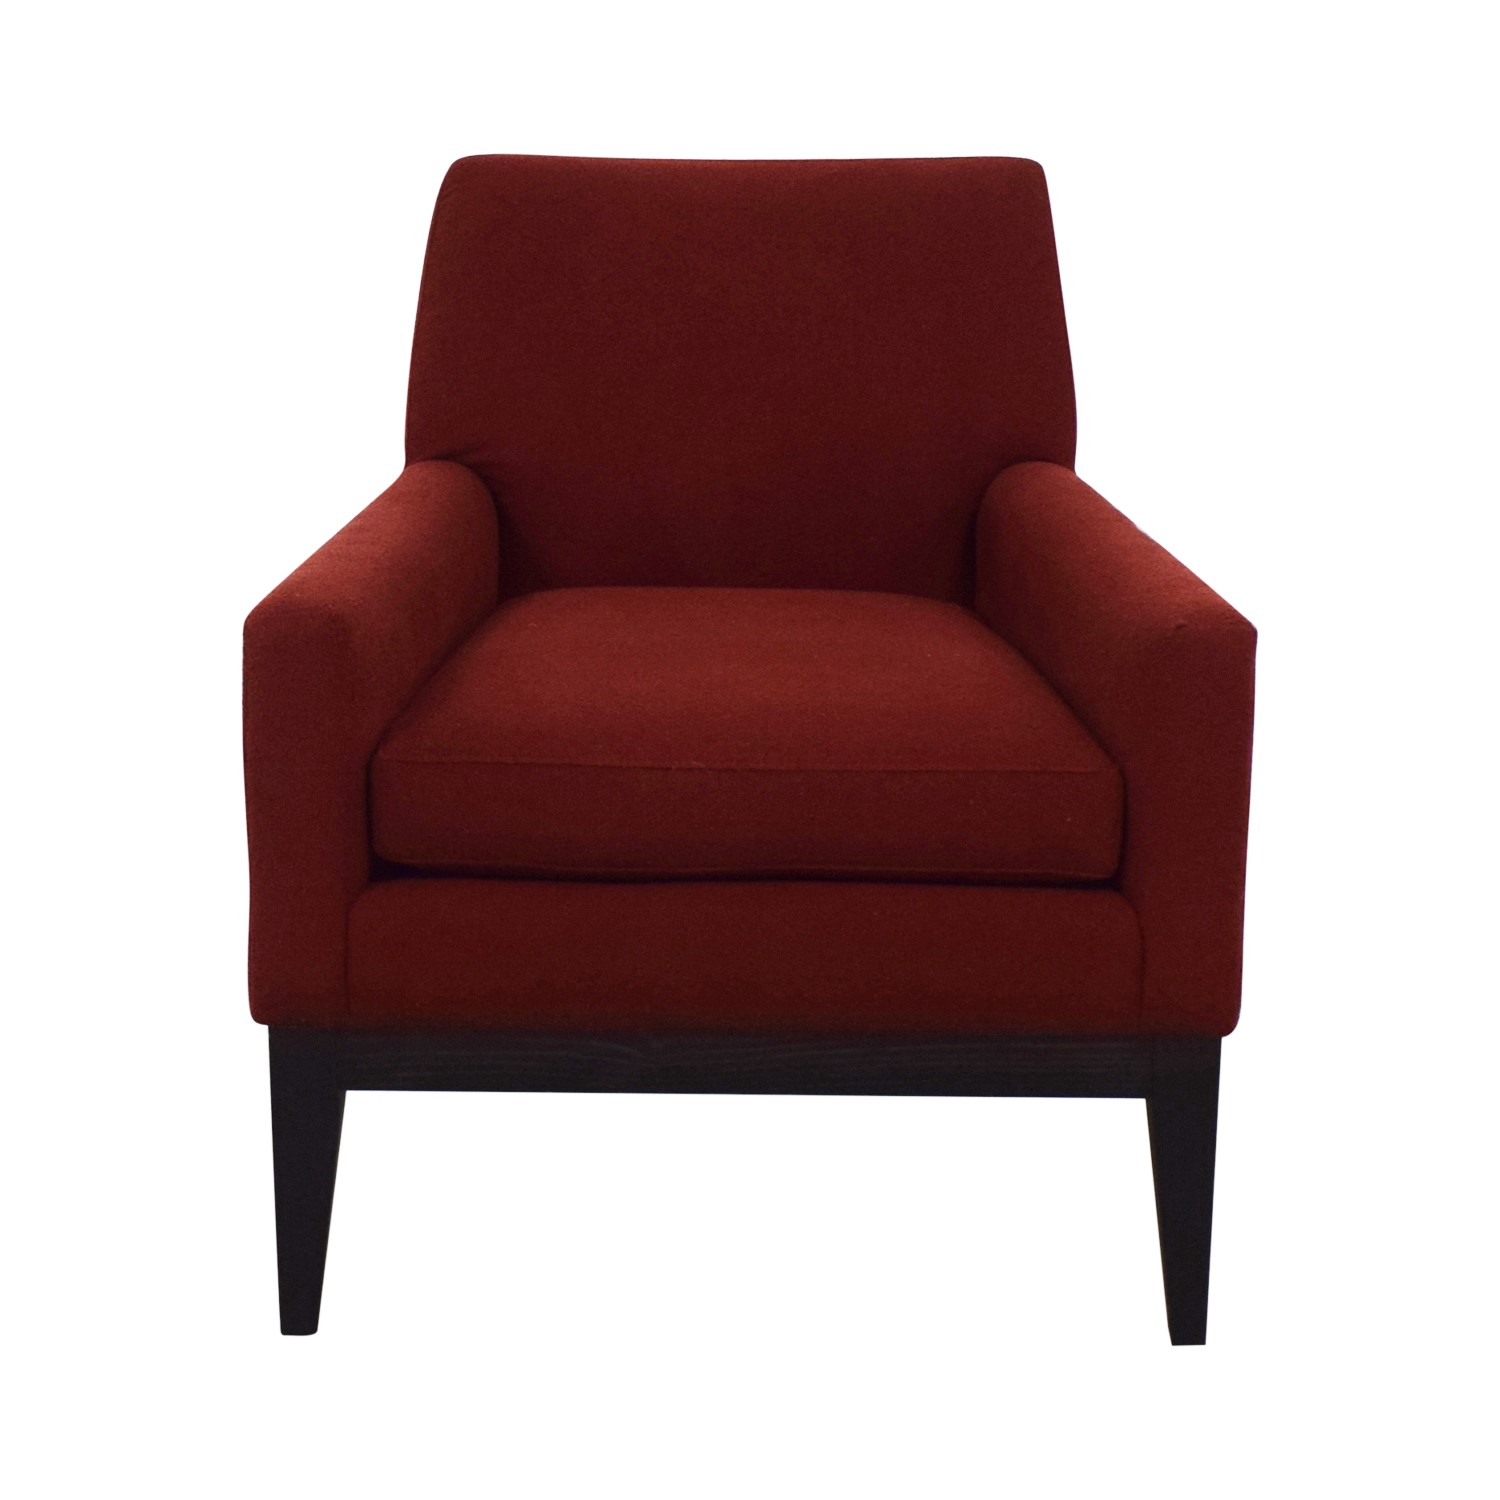 Room & Board Room & Board Norton Chair red